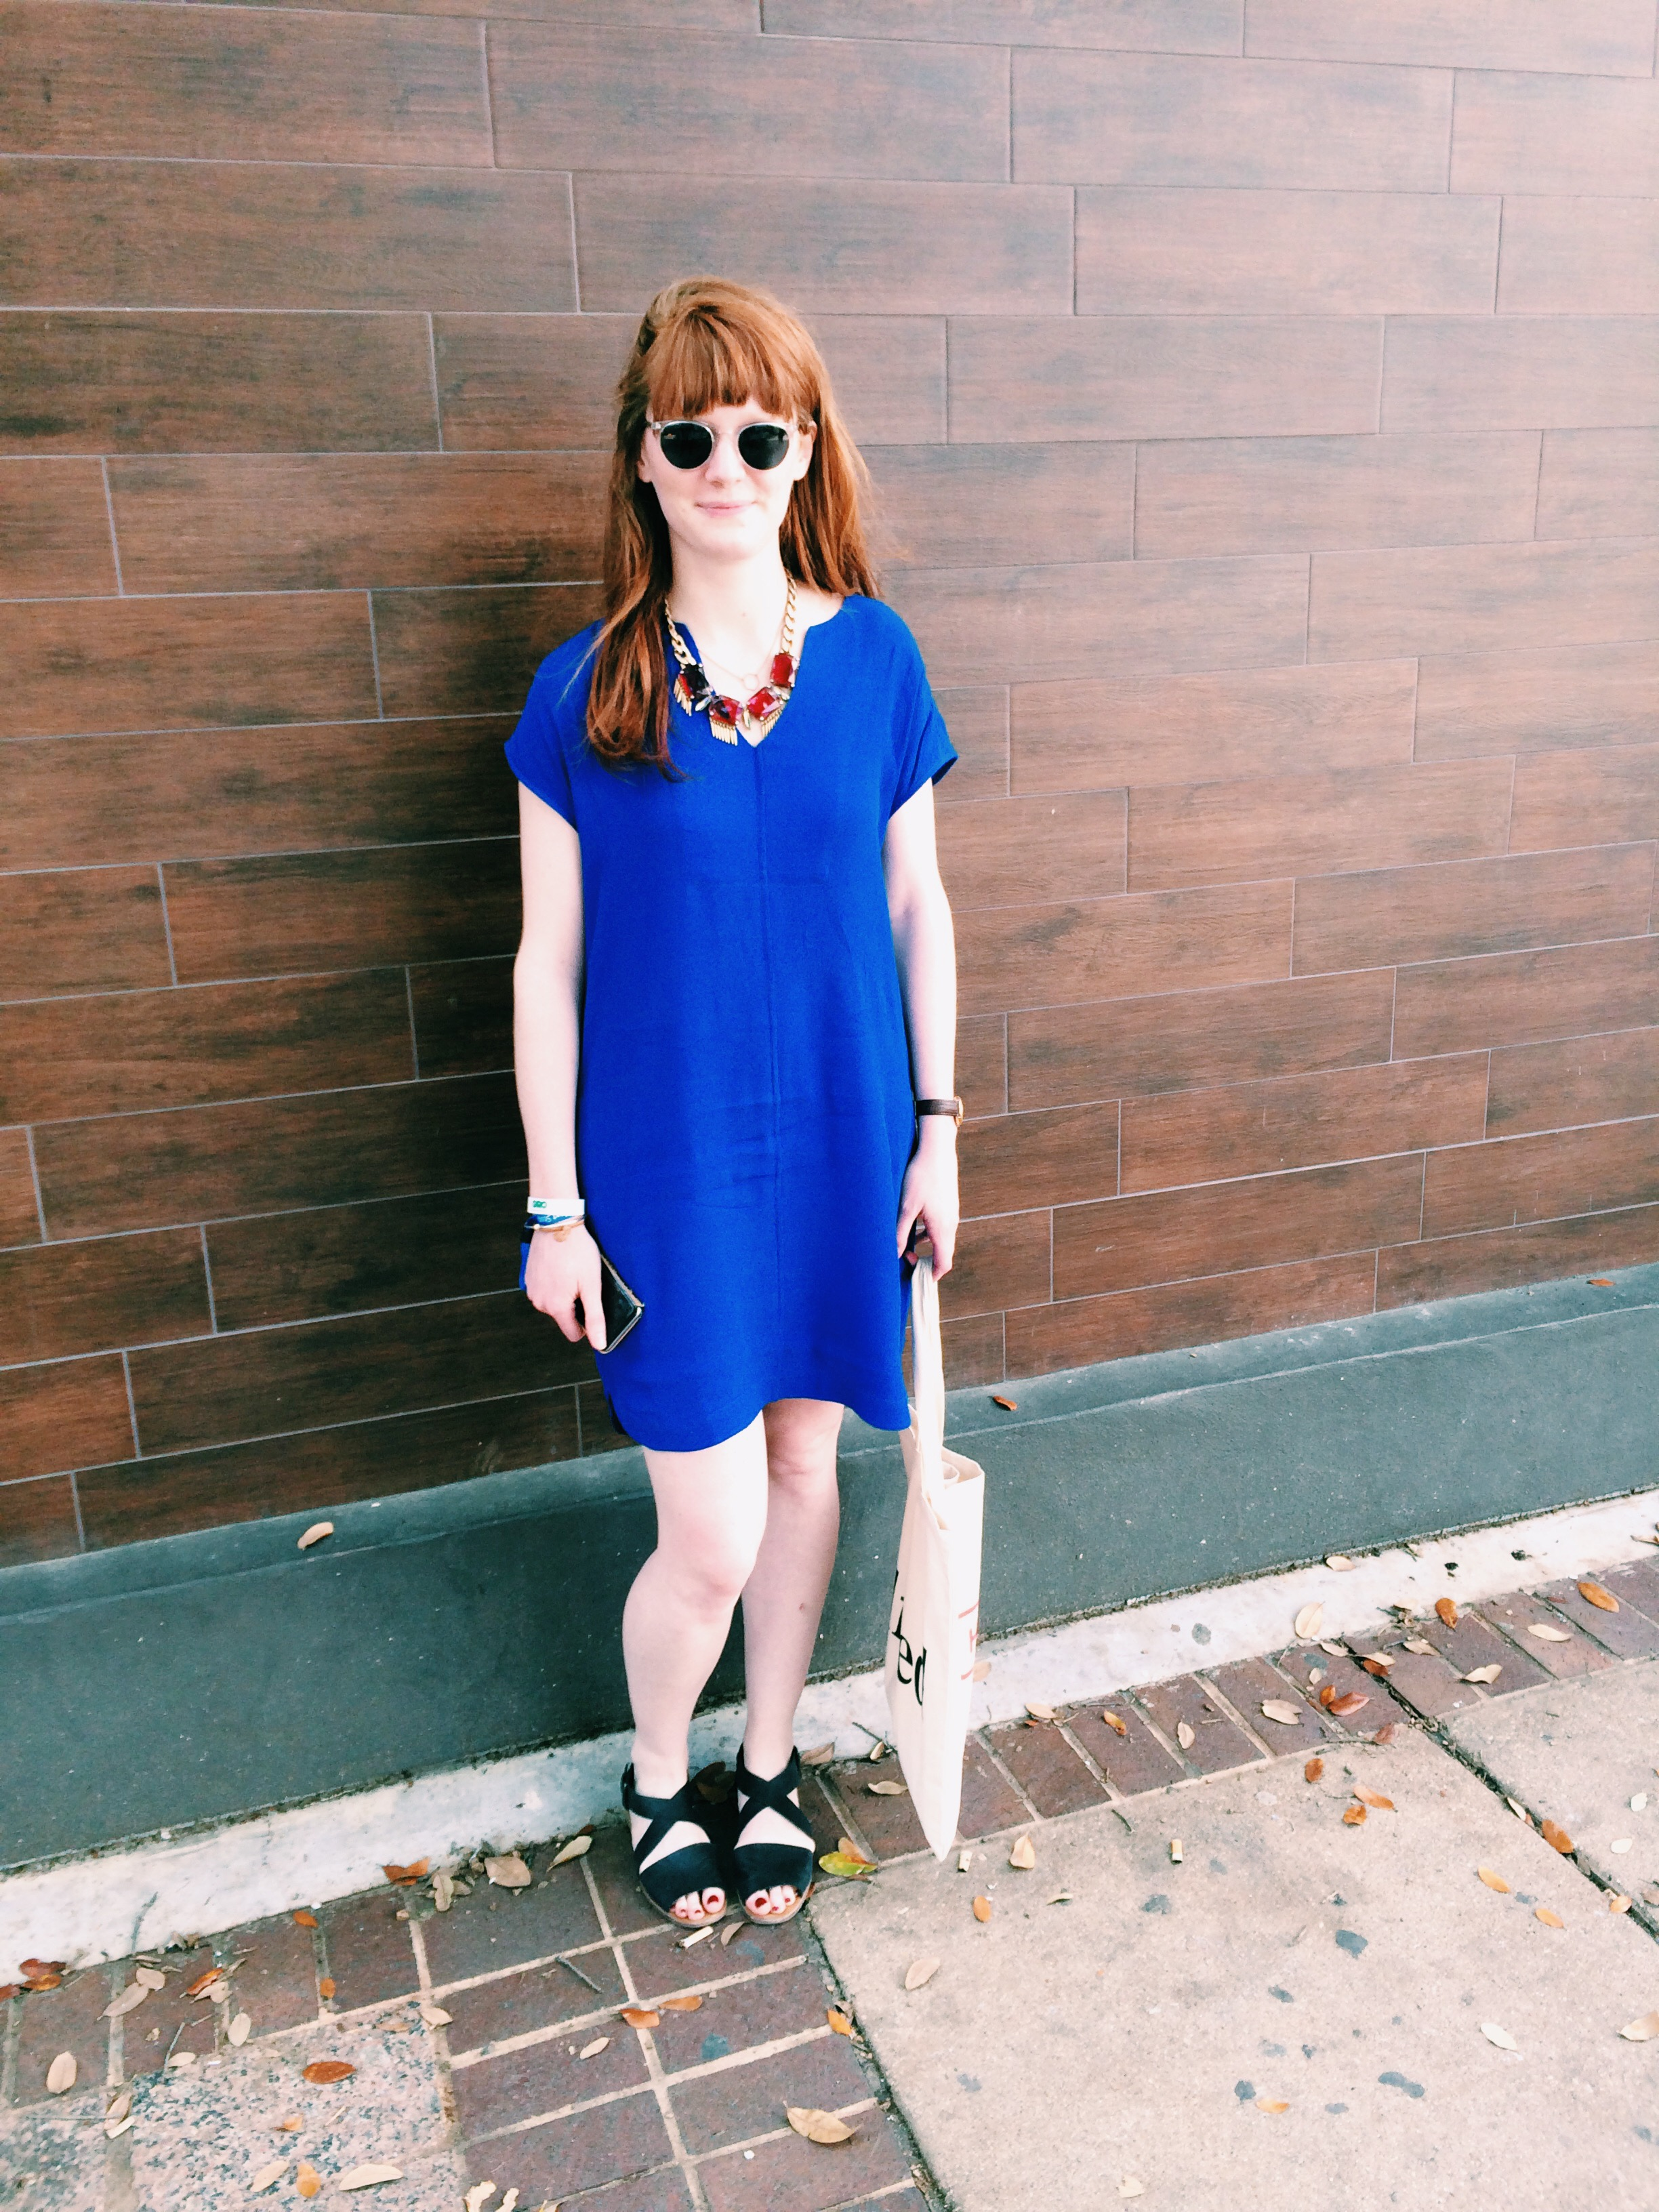 Raquel Greer Gordian shows off Lilla Cosgrove's SXSW outfit, consisting of a blue shift dress, statement necklace, black leather sandals, and round sunnies.